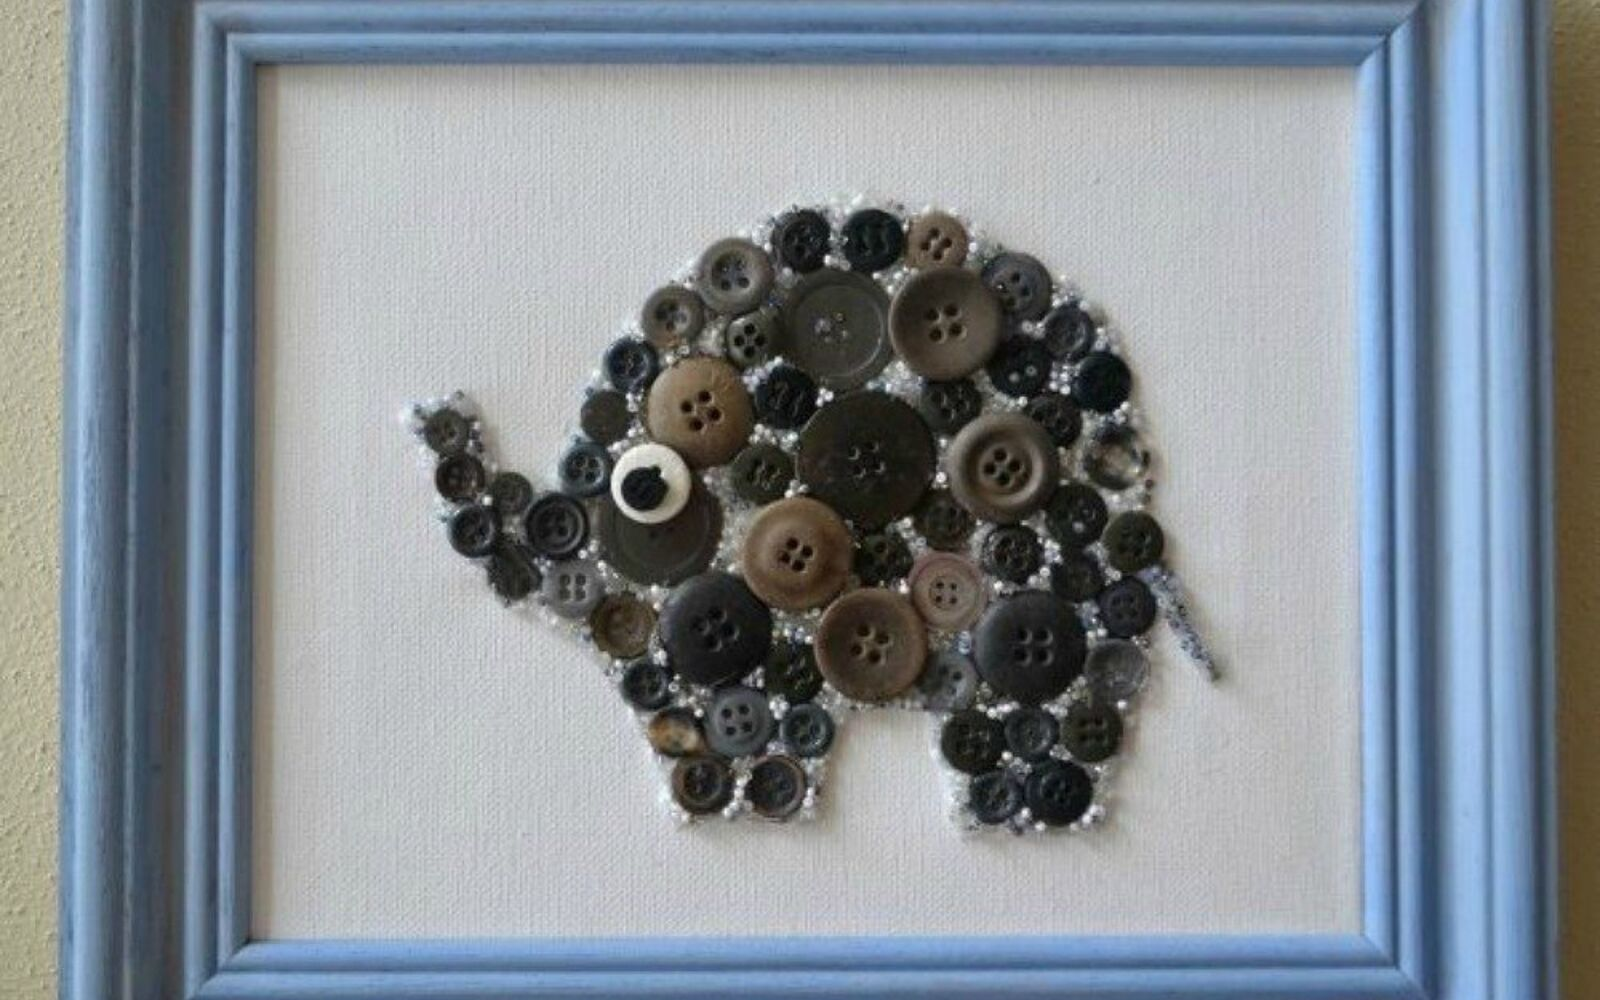 s 15 quick and easy gift ideas using buttons, Turn them into an adorable framed elephant